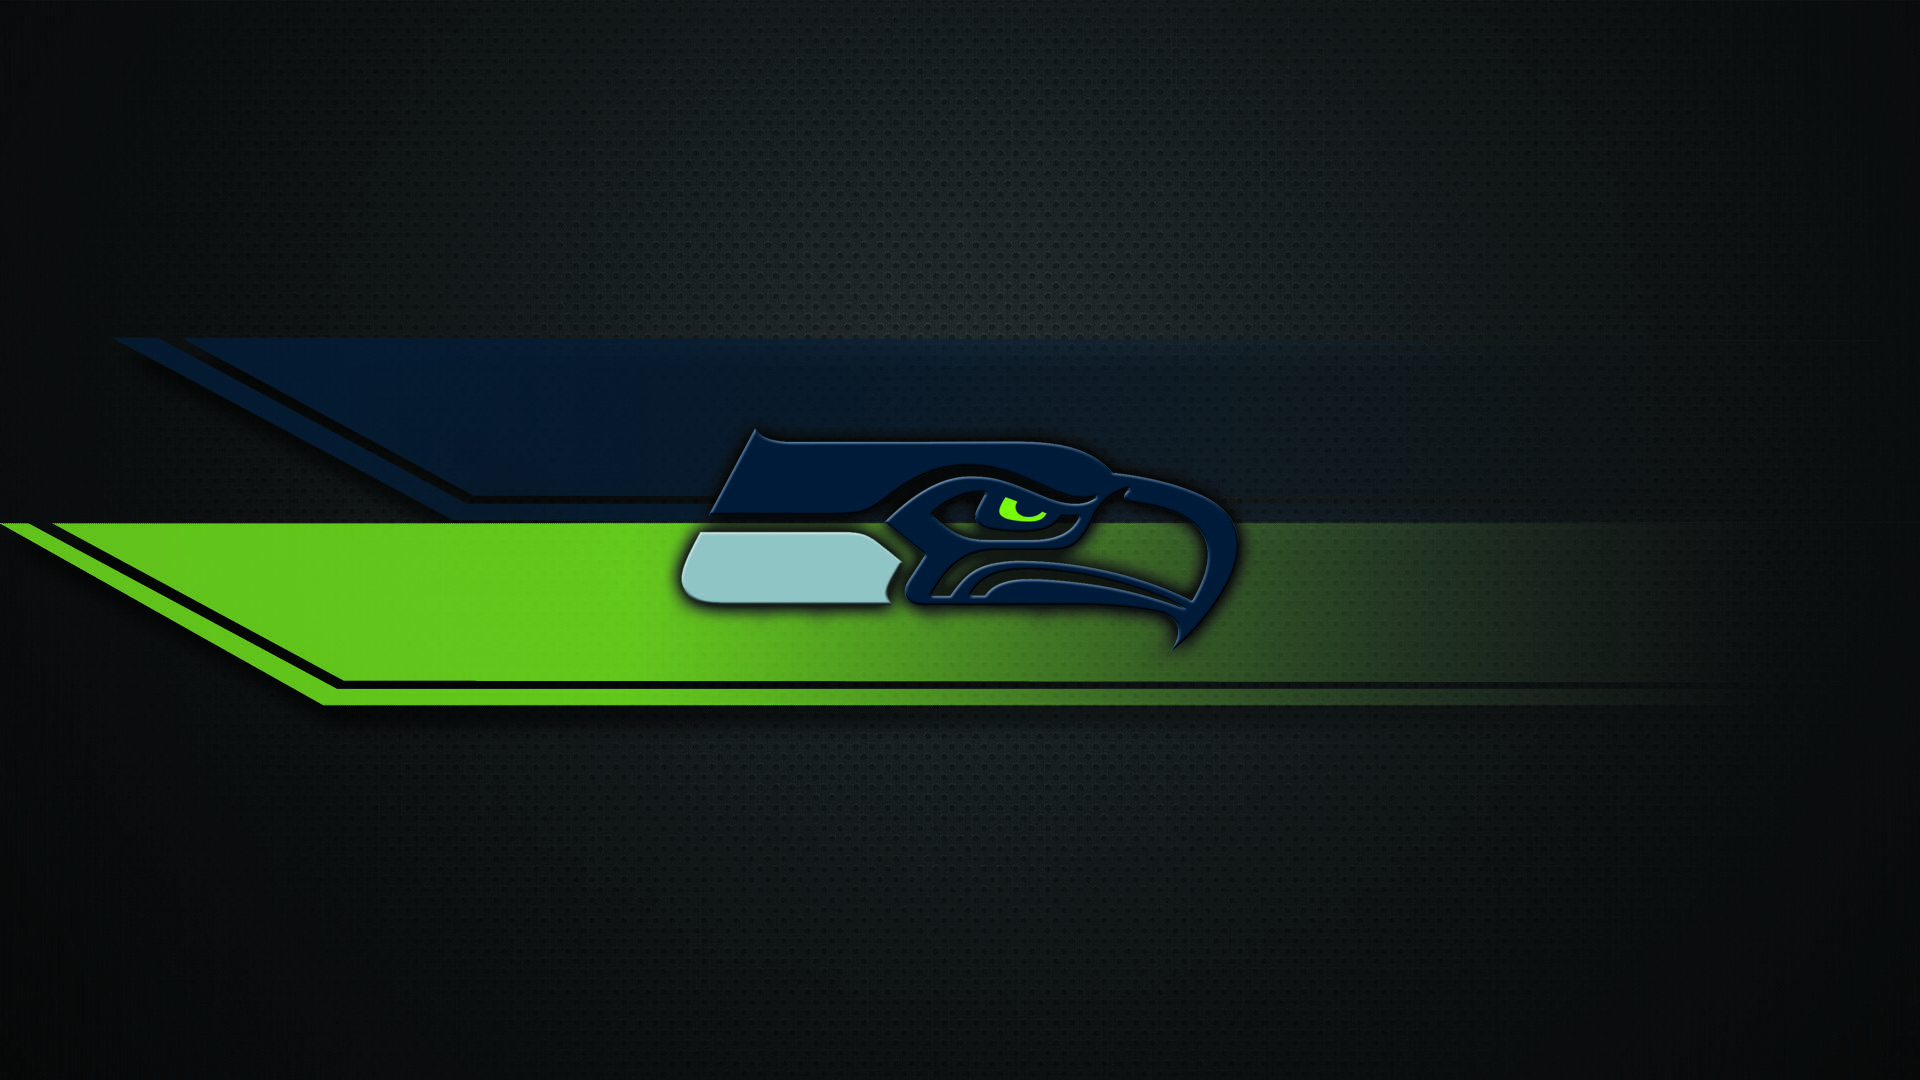 I Made A Seahawks Wallpaper 1920x1080 Need Iphone 6s Plus